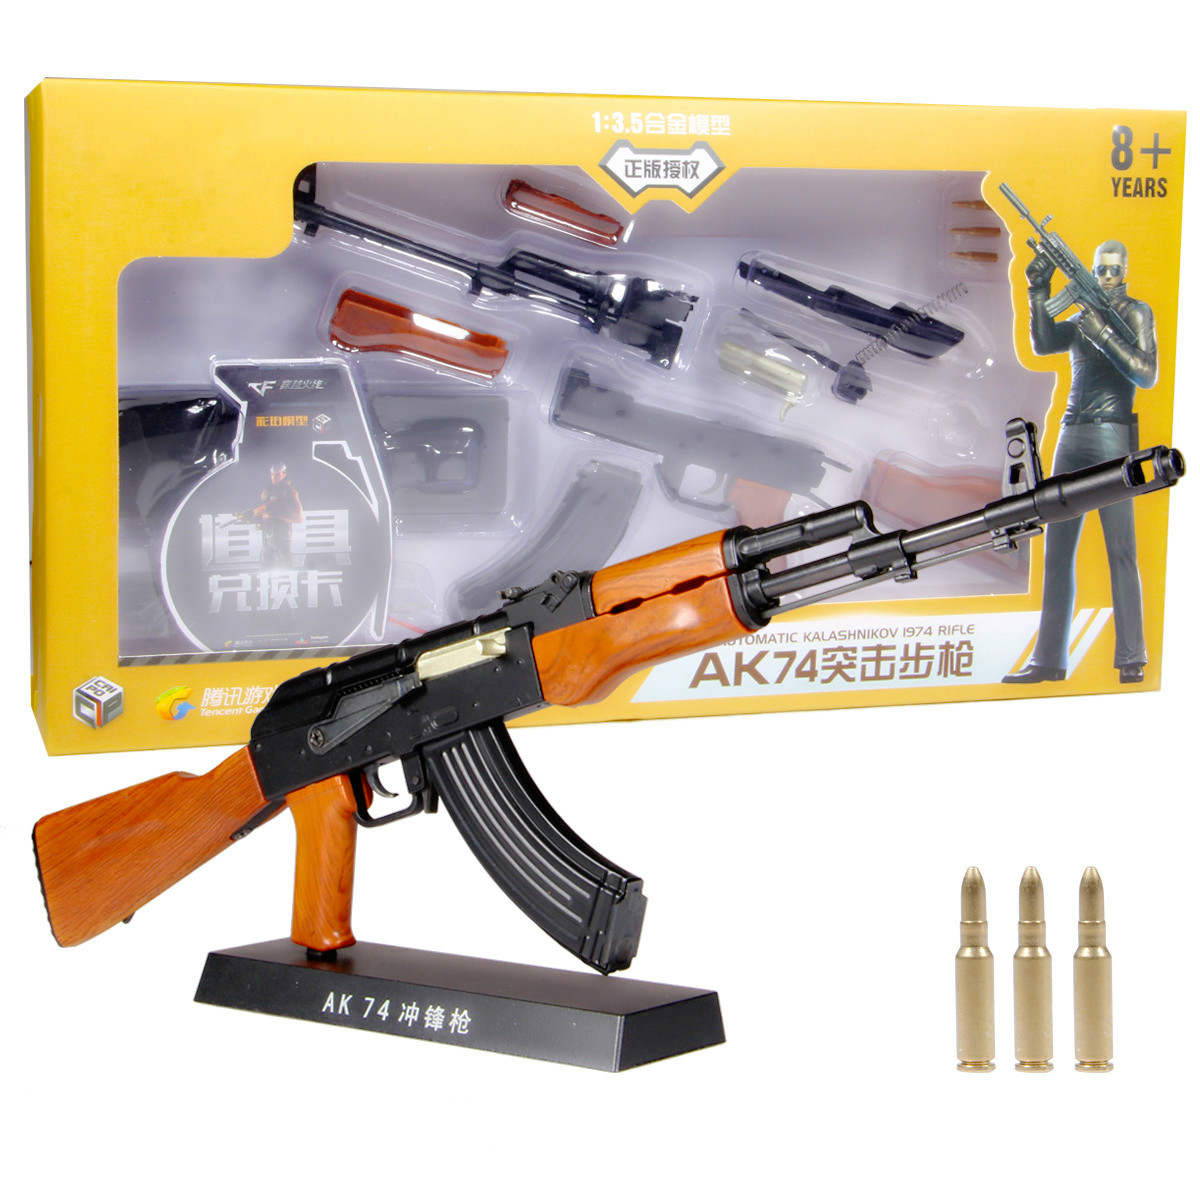 Buy Firearms Guns Online: Online Buy Wholesale Toy Sniper Rifle From China Toy